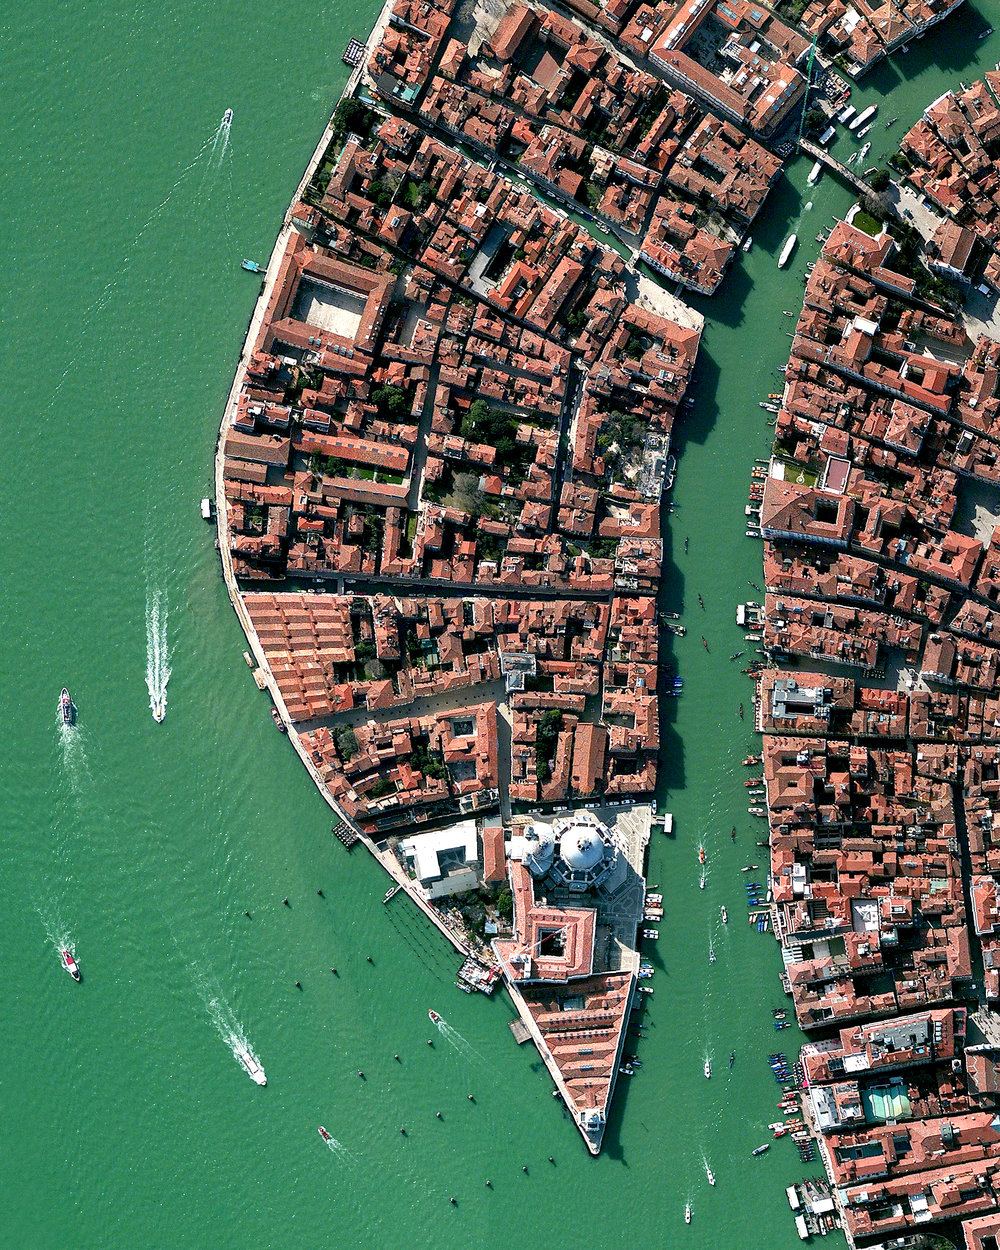 """This Overview shows part of the Dorsoduro sestiere in Venice, Italy. A sestiere — which comes from the Italian """"sesto,"""" meaning sixth — is a subdivision of an Italian town or city divided into six districts. Dorsoduro is Venice's university district and is filled with bars, restaurants, indie shops, vintage fashion boutiques and art galleries, such as the Peggy Guggenheim Collection.  45°25'49.3""""N, 12°20'00.4""""E  Source imagery: DigitalGlobe"""